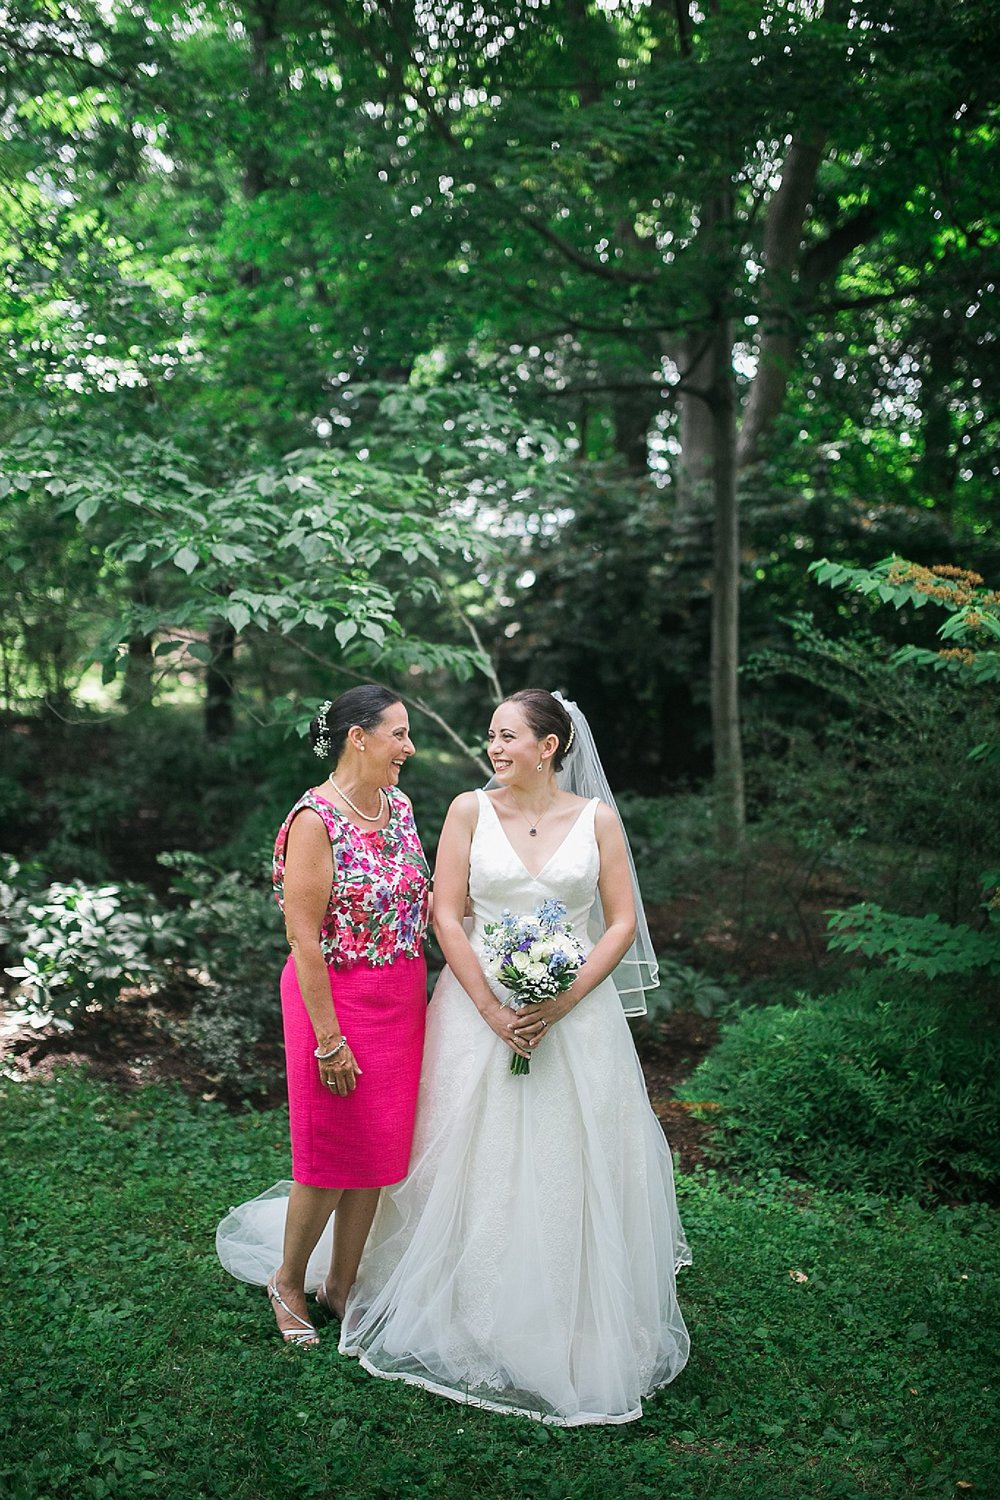 Mount Kisco Backyard Wedding Hudson Valley Photographer Sweet Alice Photography25.jpg